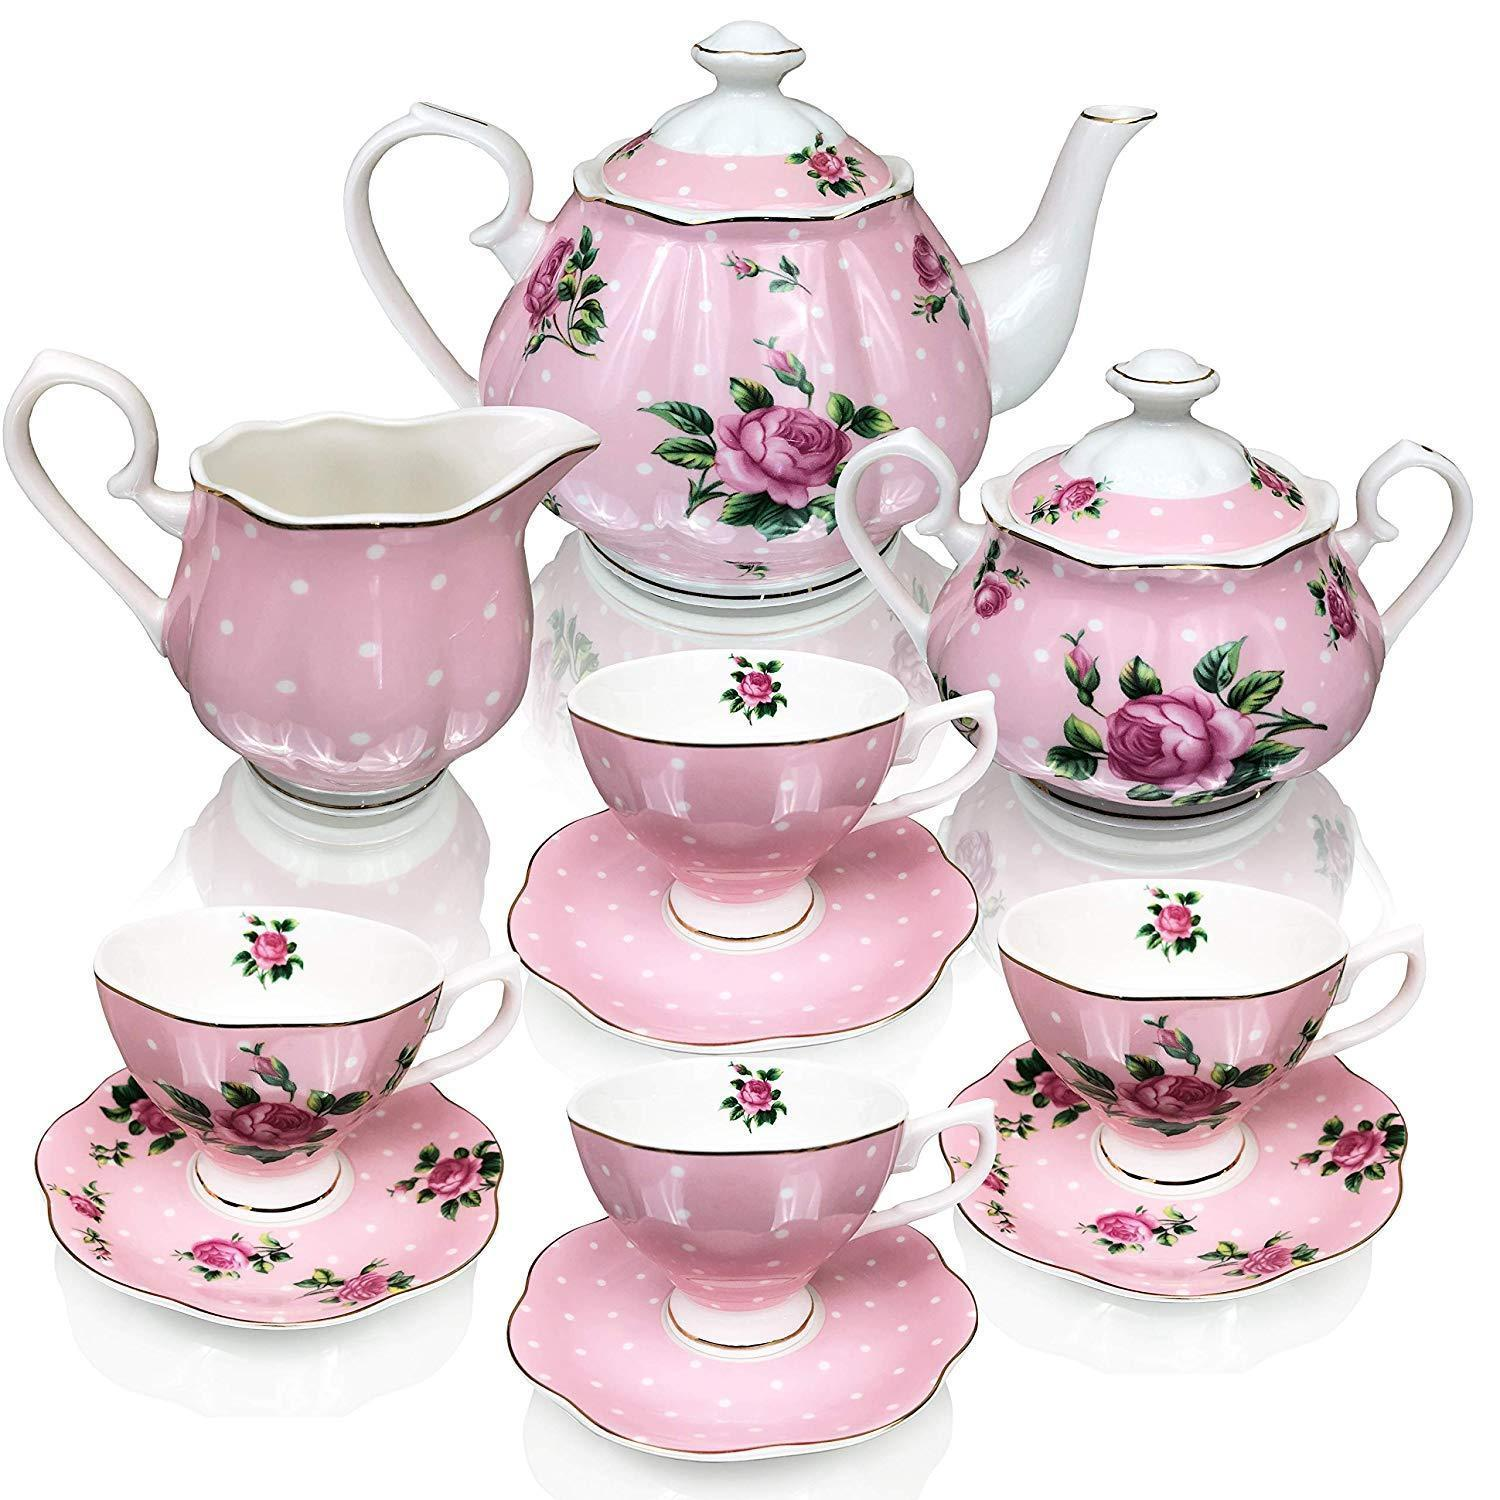 Porcelain Tea Cups Sets for Adults